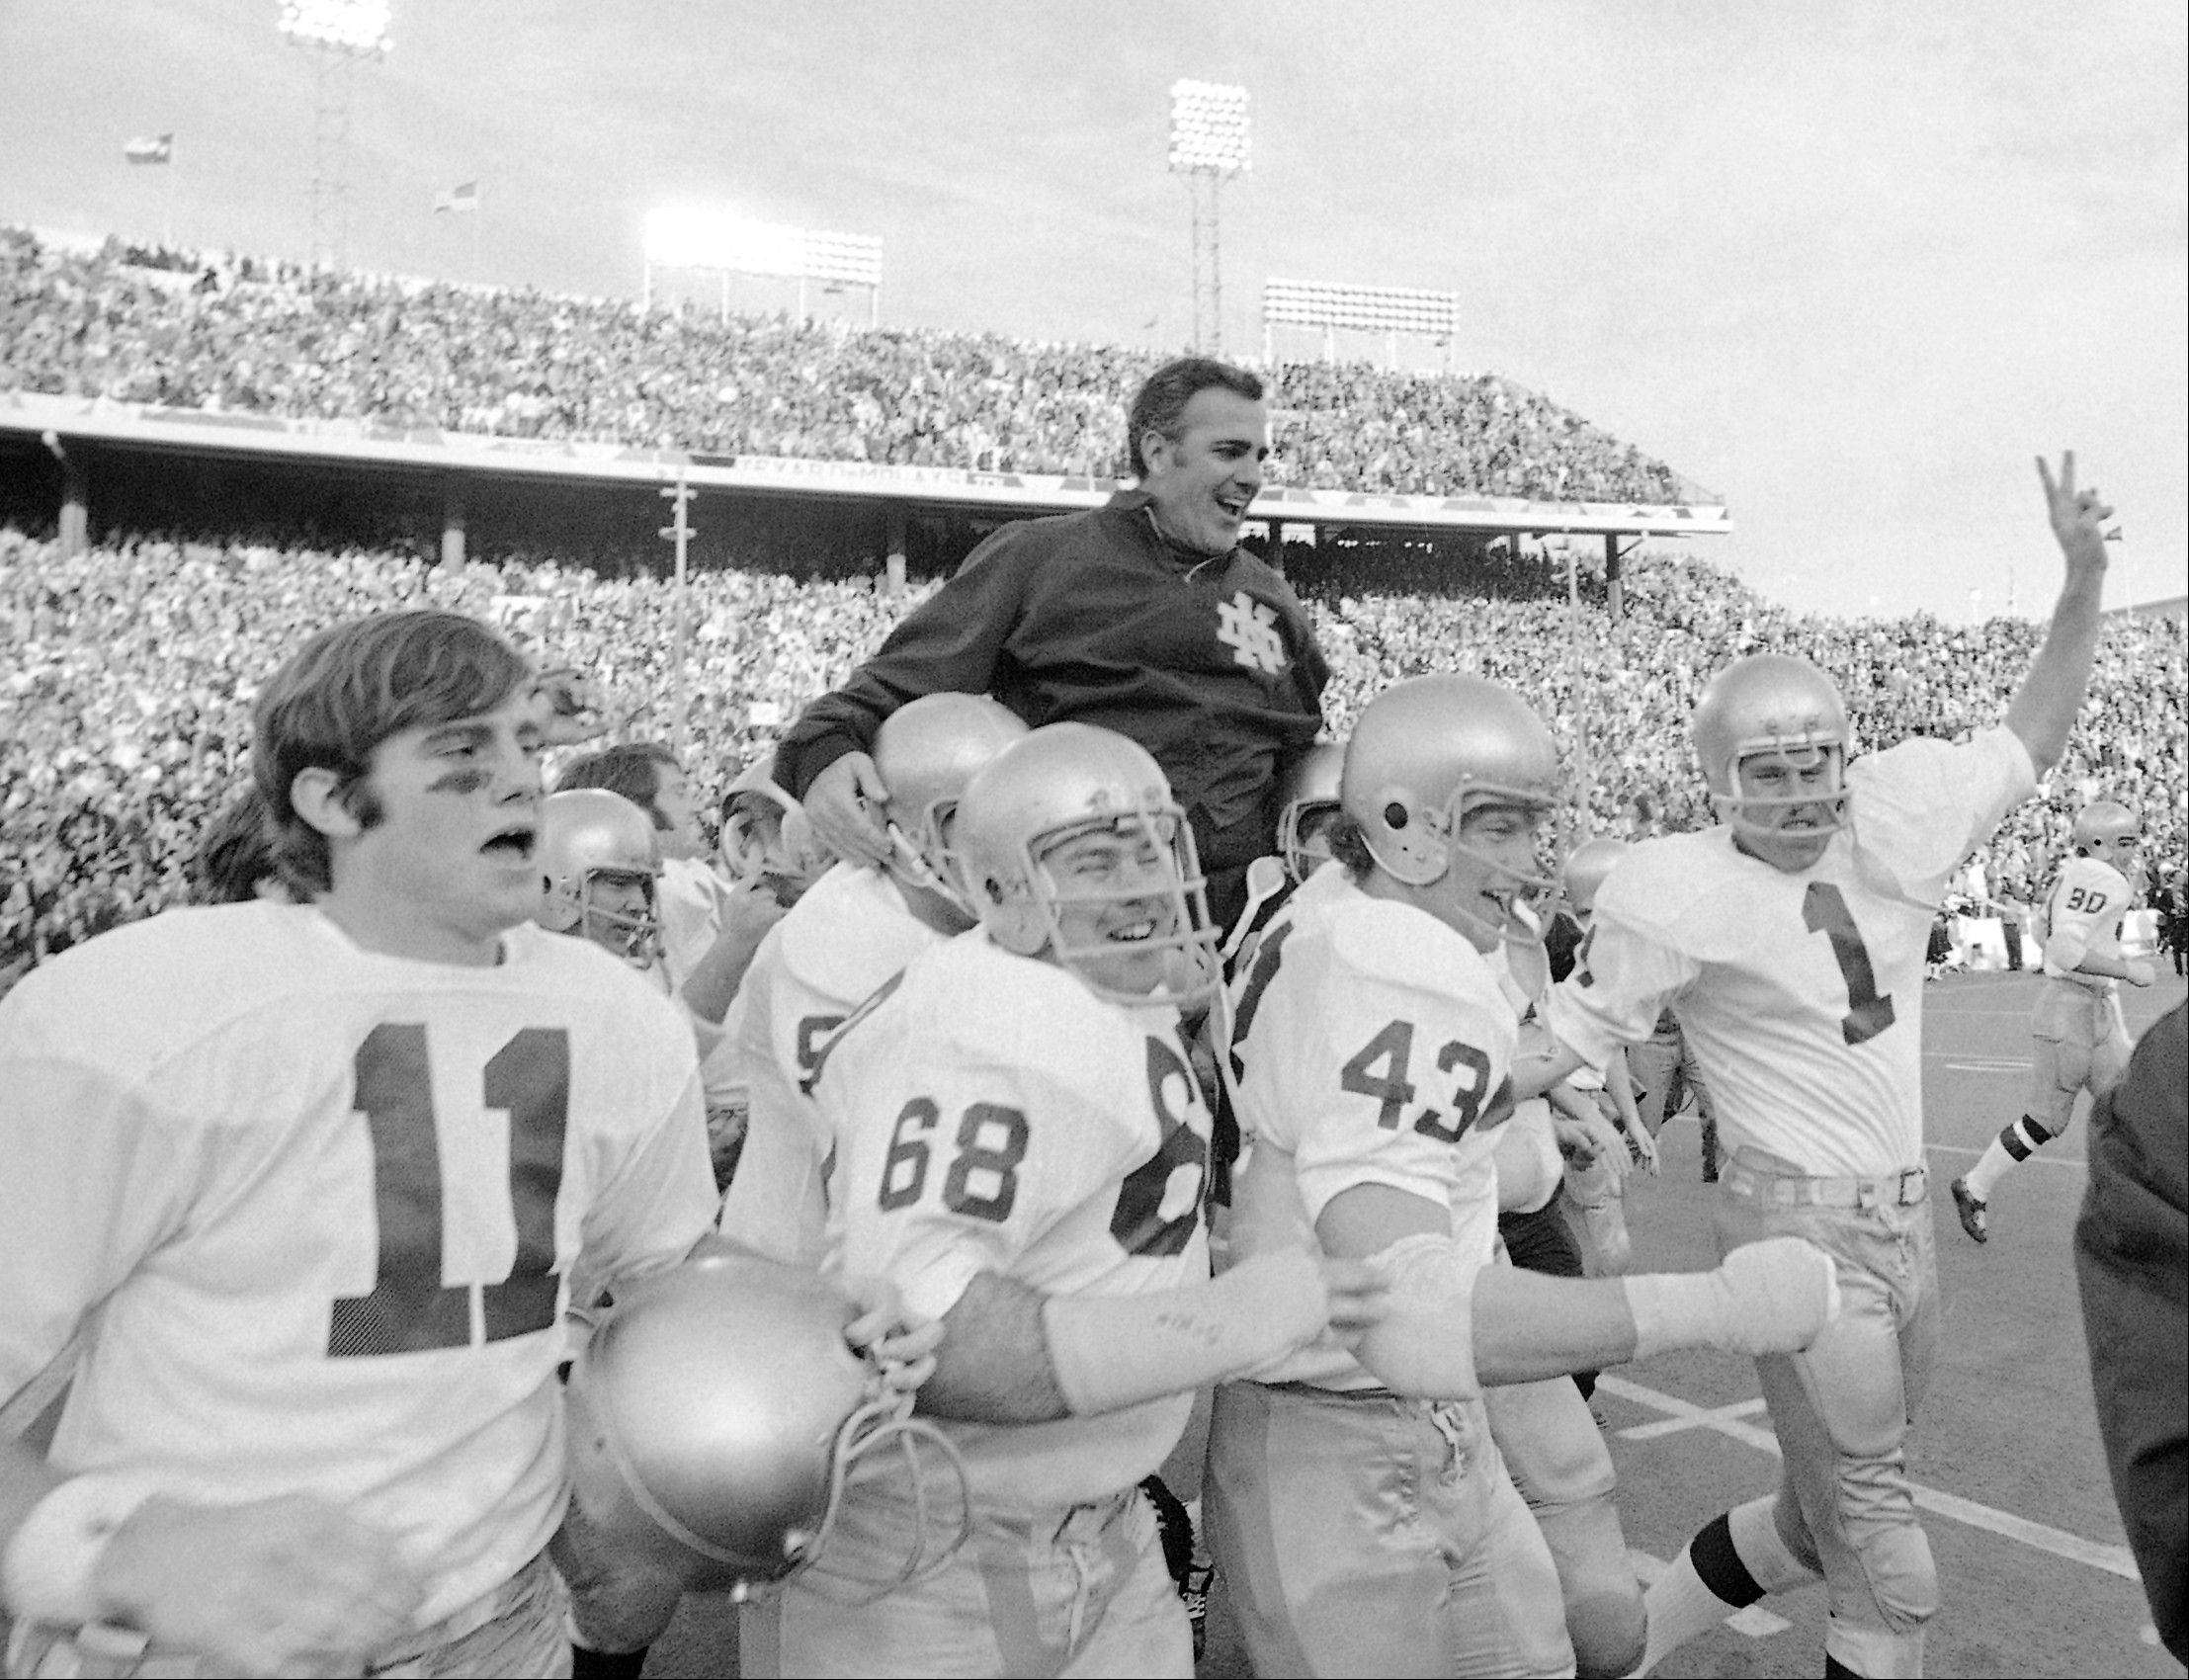 Notre Dame coach Ara Parseghian is carried off the field by his victorious players after the Irish beat Texas 24-11 in the Cotton Bowl in Dallas. At a time when college football was generally considered the domain of eastern blue bloods, Notre Dame and Alabama were upstart teams that gave blue collar fans a chance to tweak the elite. About 90 years later, the Fighting Irish and Crimson Tide are the elite — two of college football's signature programs, set to play a national championship next Monday in Miami that could break records for television viewership.